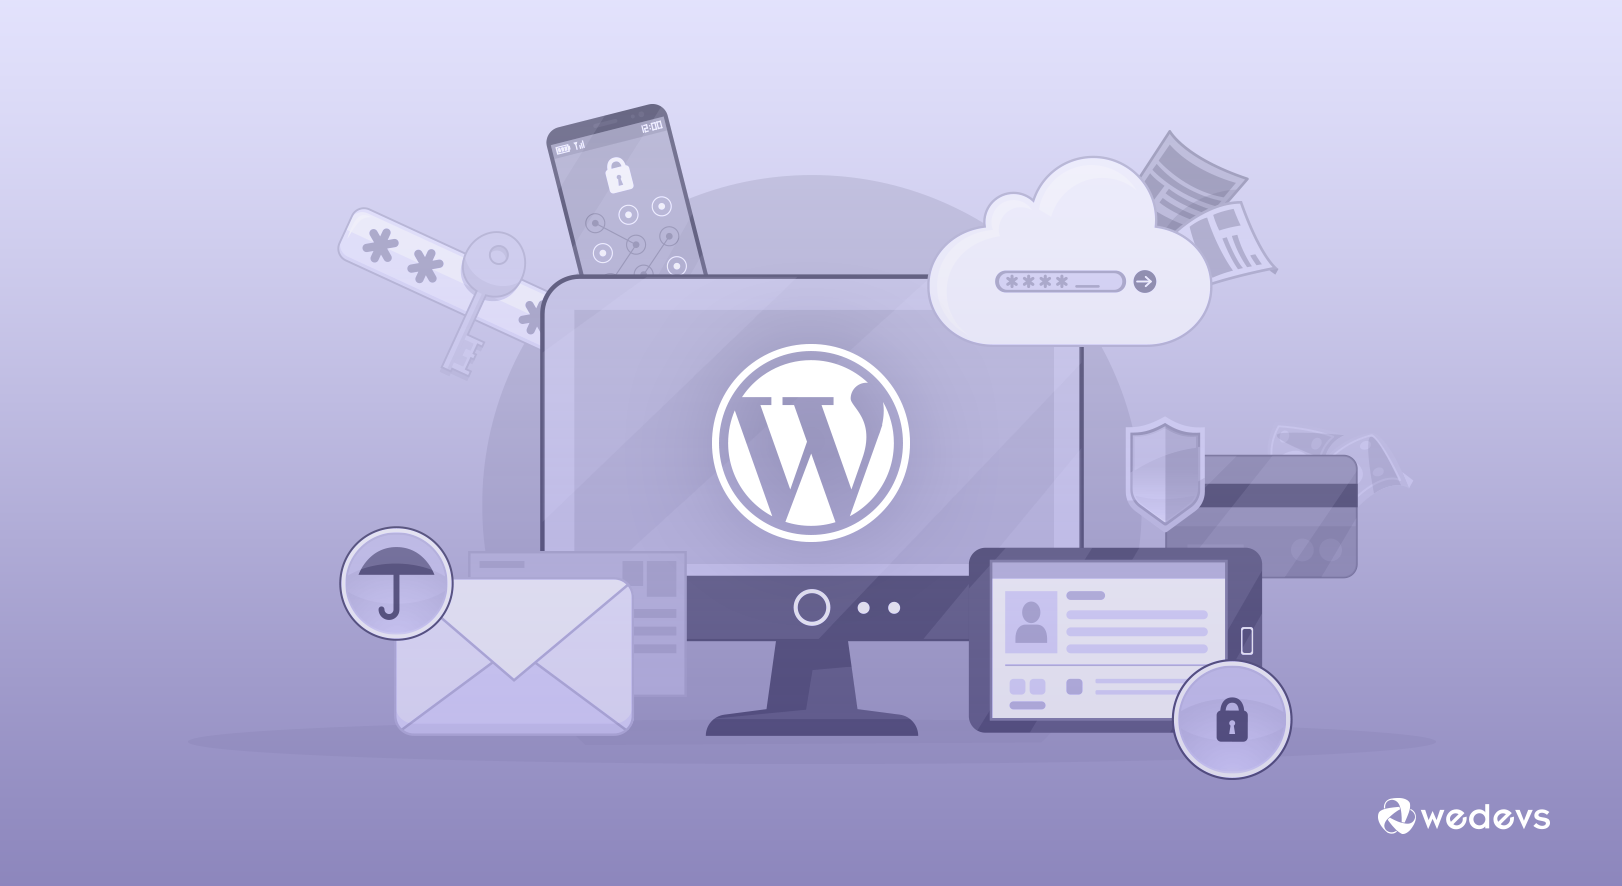 Make WordPress the Best and Most Secure Platform to Power Your Websites